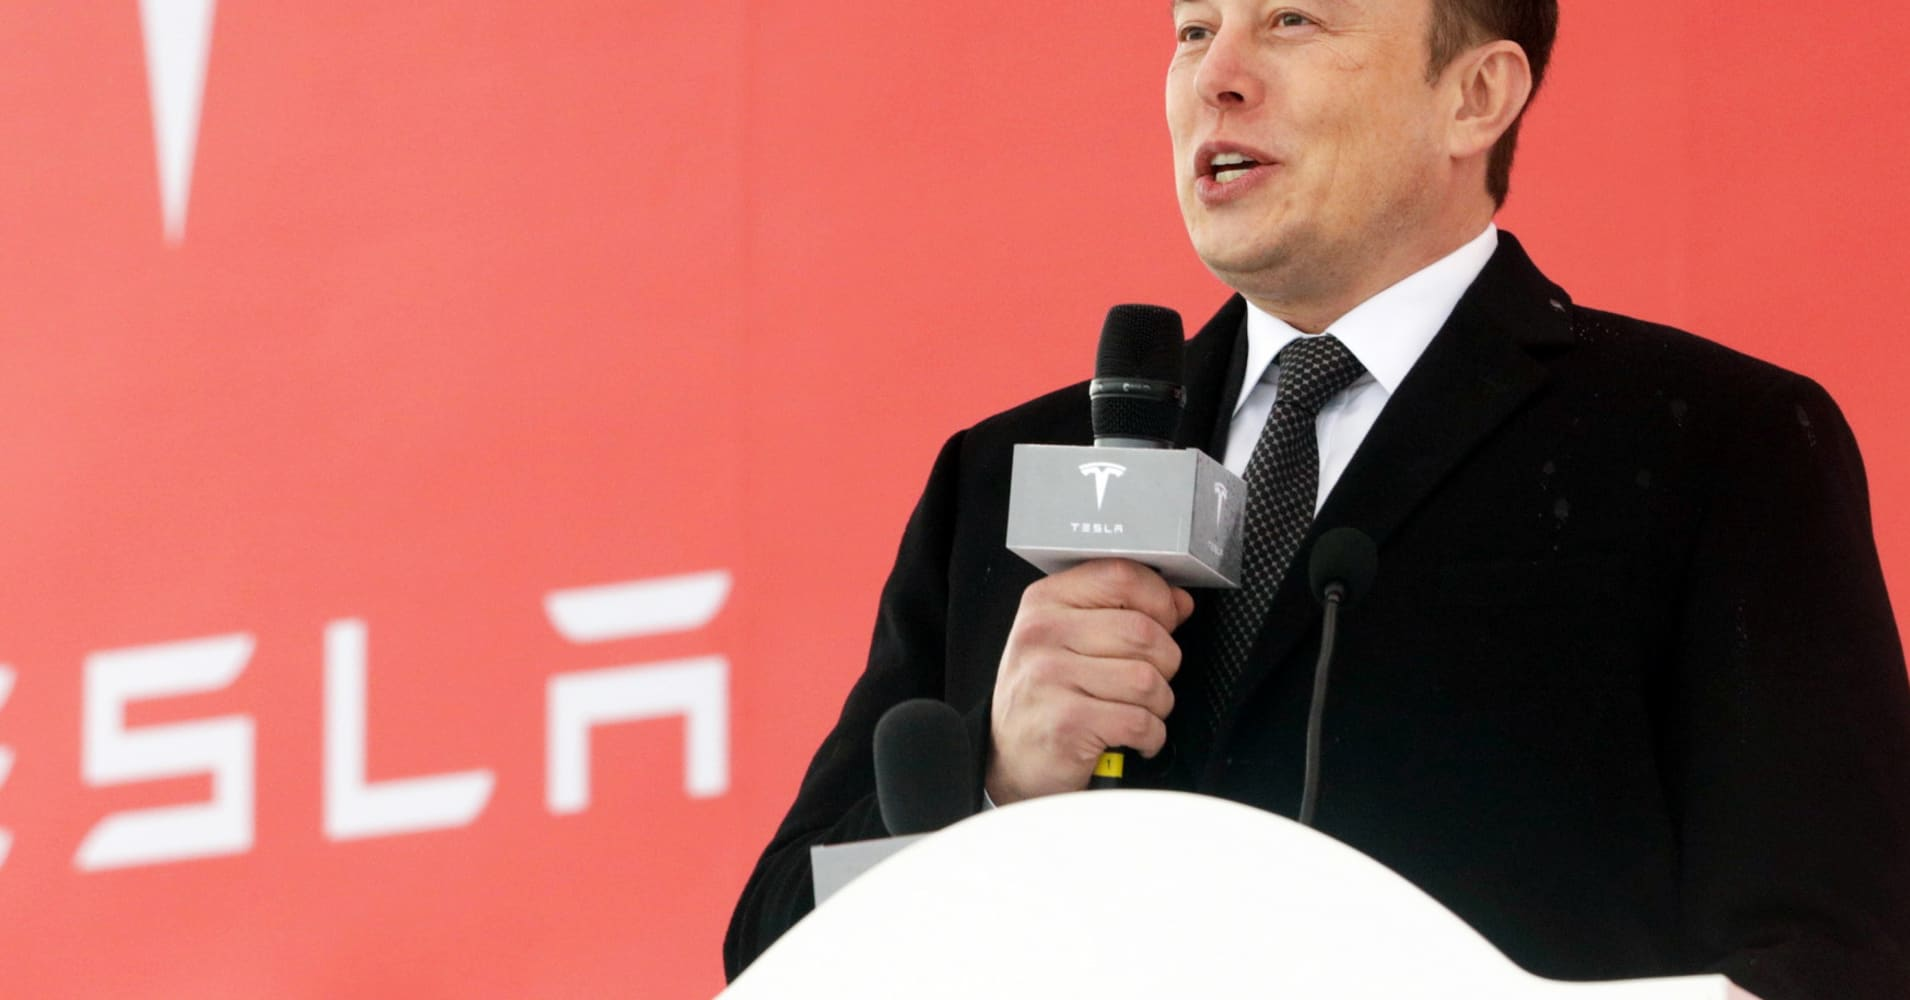 Elon Musk told this Reddit user they 'should interview at Tesla' — here's why